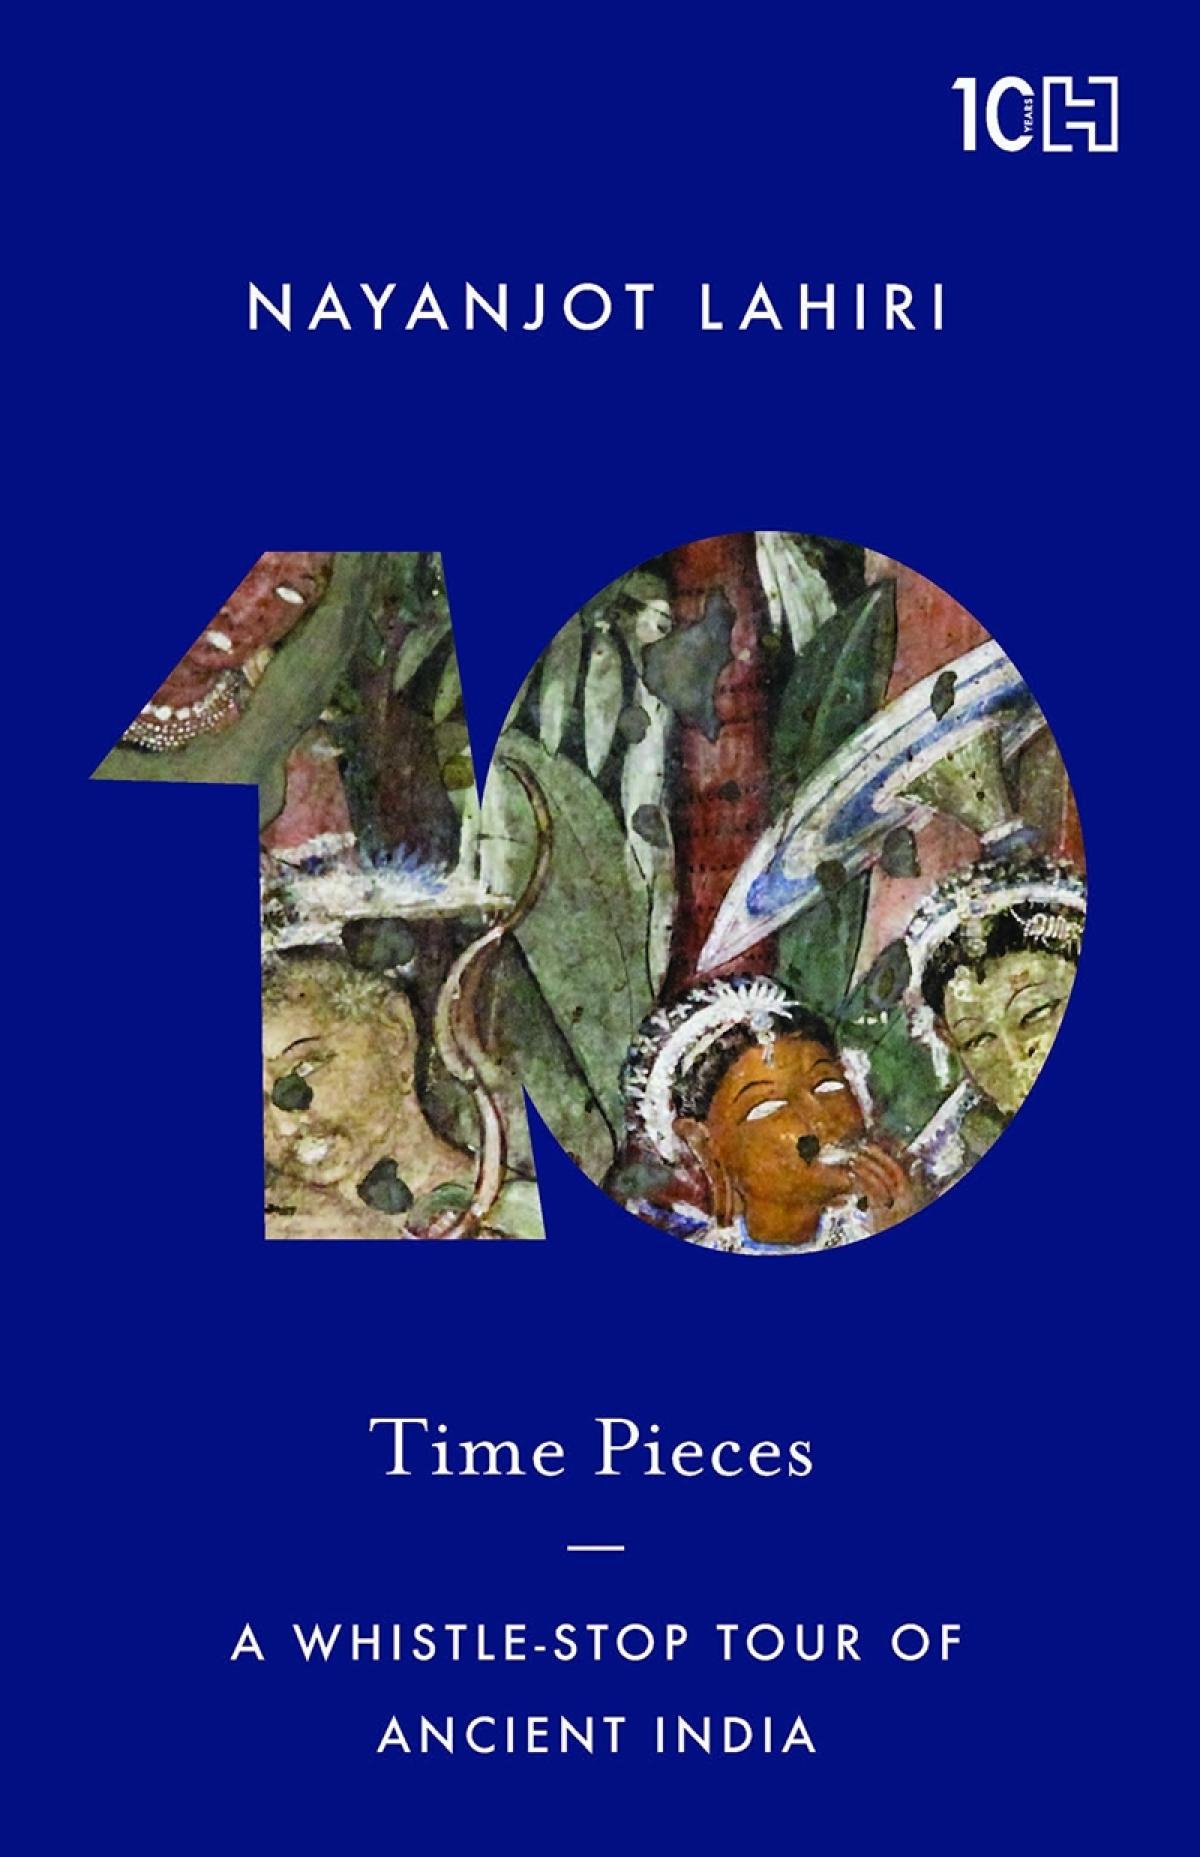 Time Pieces: A Whistle-Stop Tour of Ancient India by Nayanjot Lahiri- Review